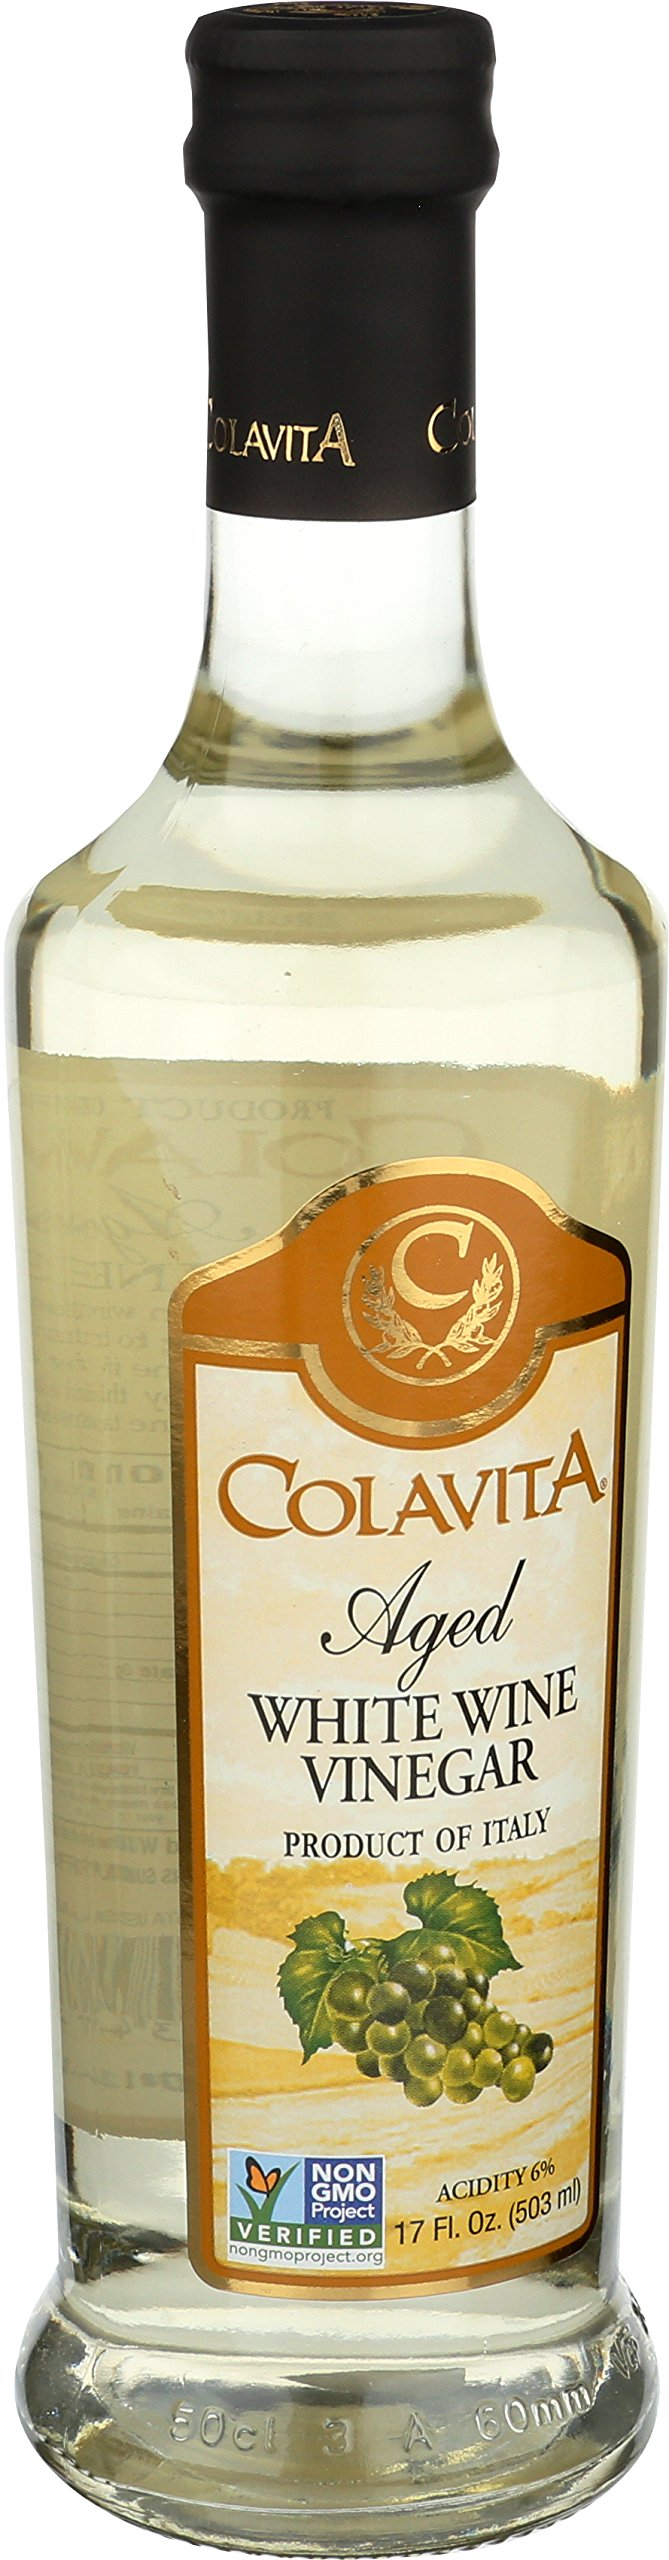 Colavita White Wine Vinegar, 17 oz by Colavita (Image #5)